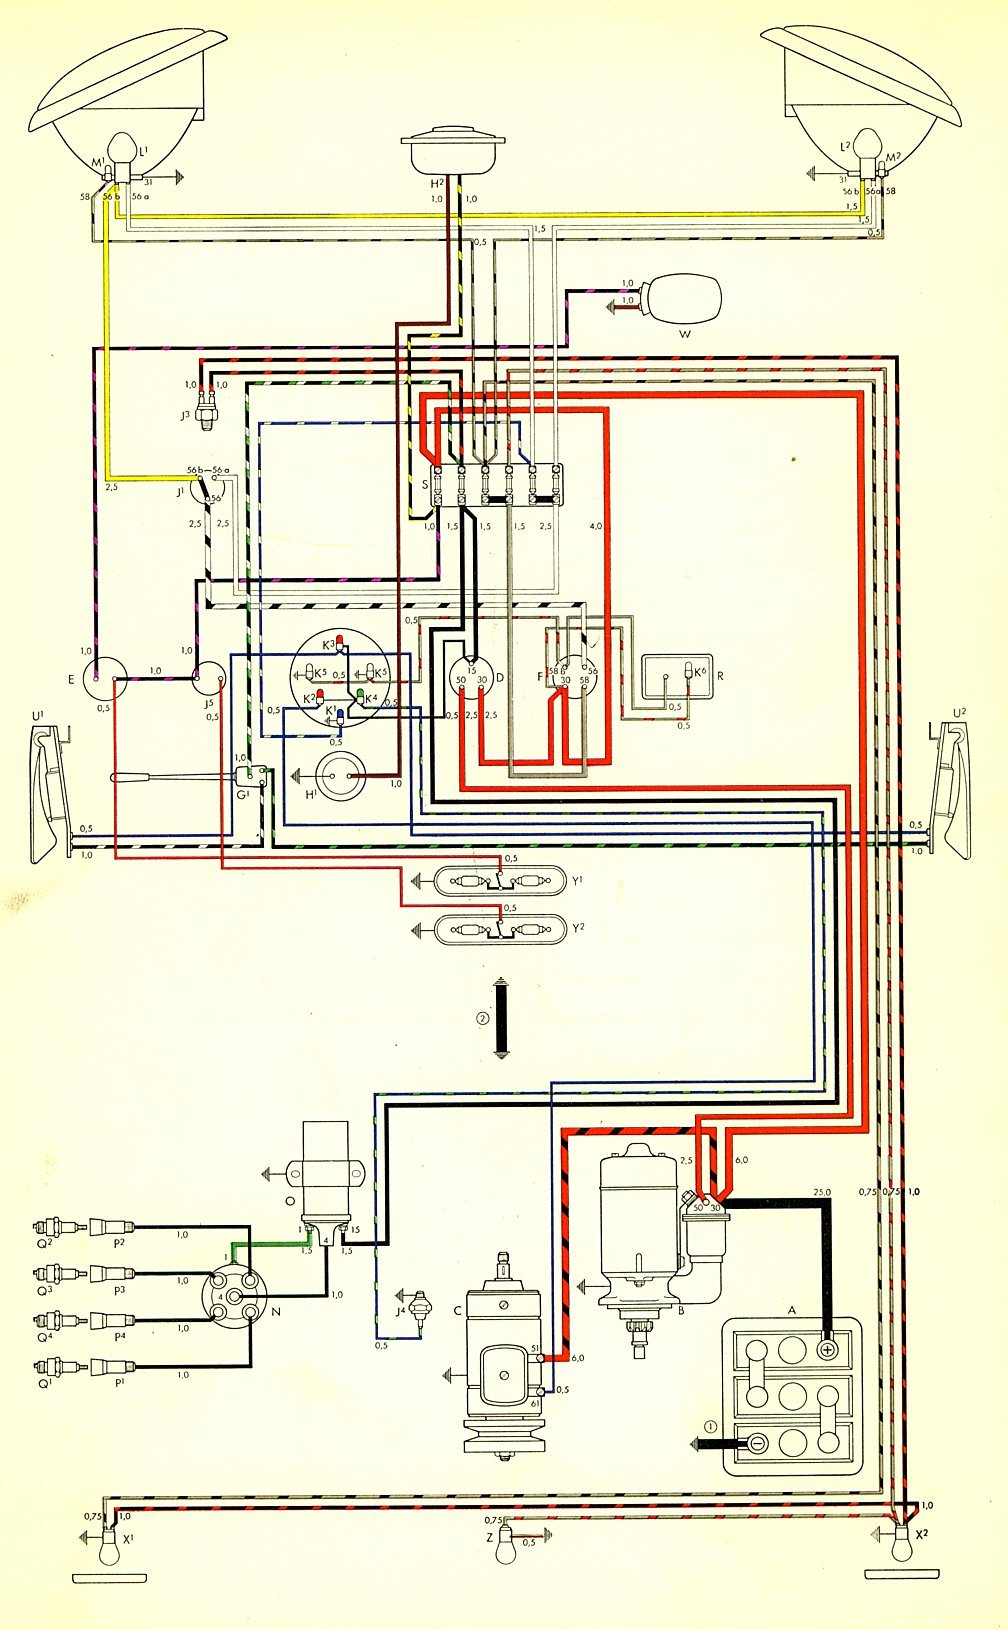 vw 73 bus alternator wiring diagram vw bus ignition wiring diagram